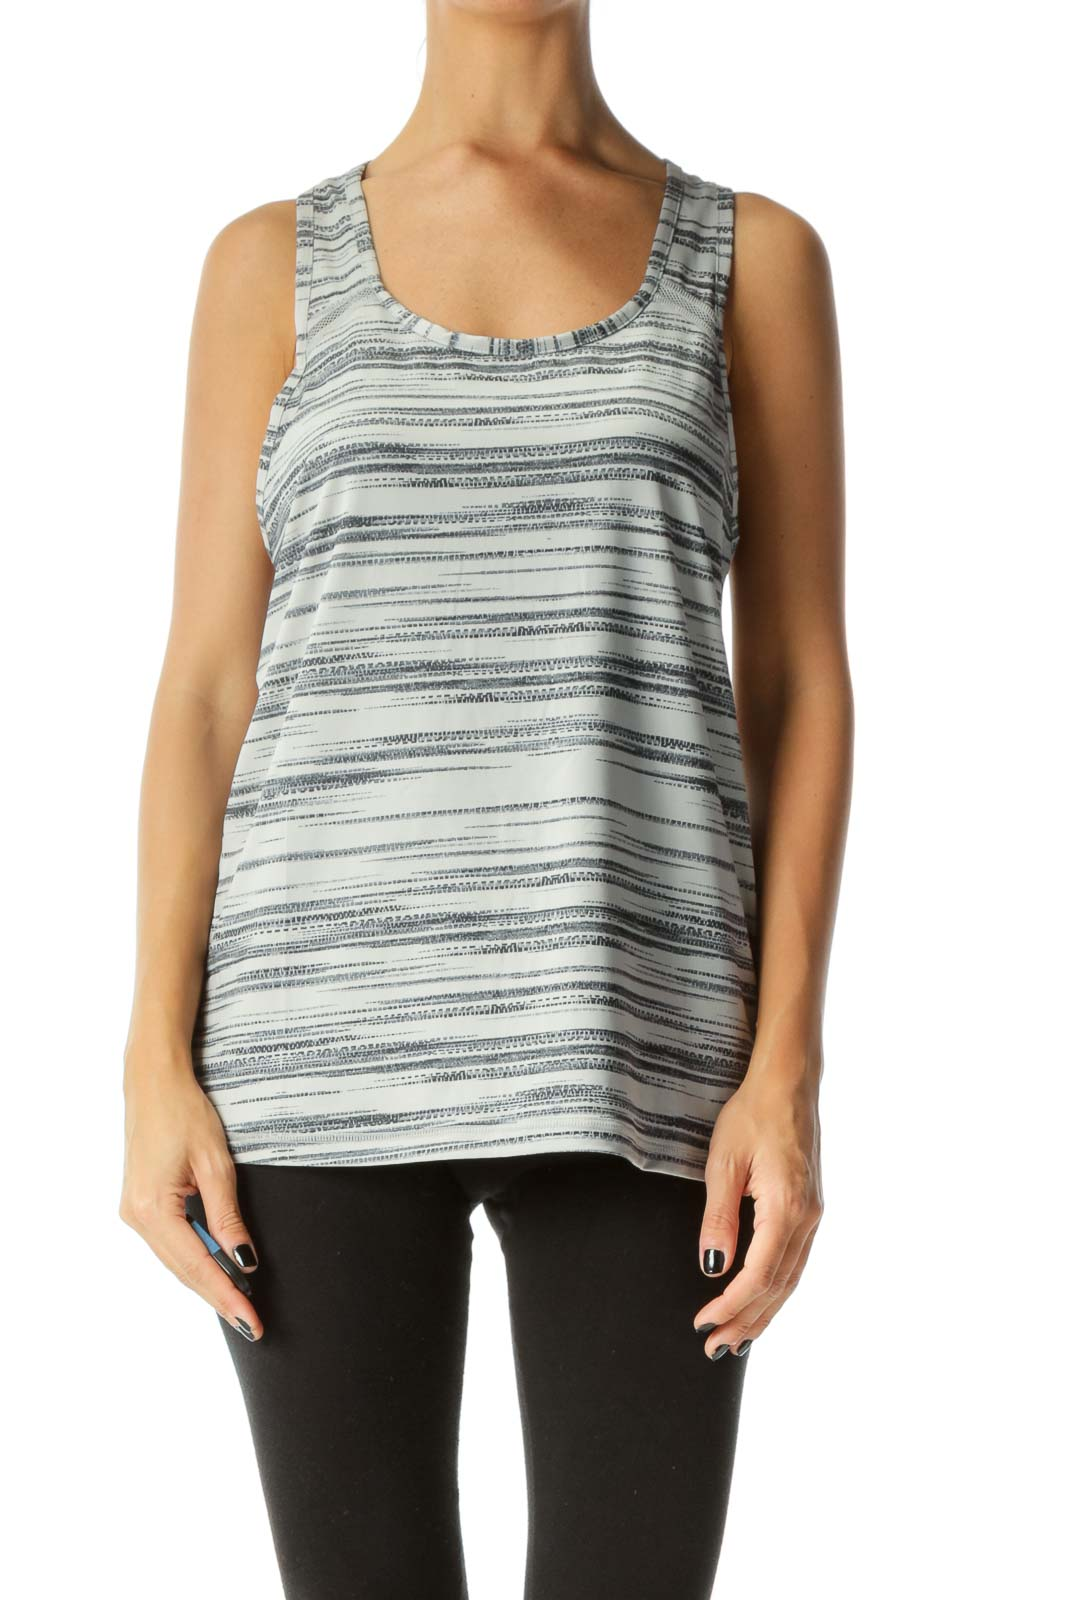 Gray Abstract-Stripe Patterned Racer-Back Net-Detail Yoga Tank